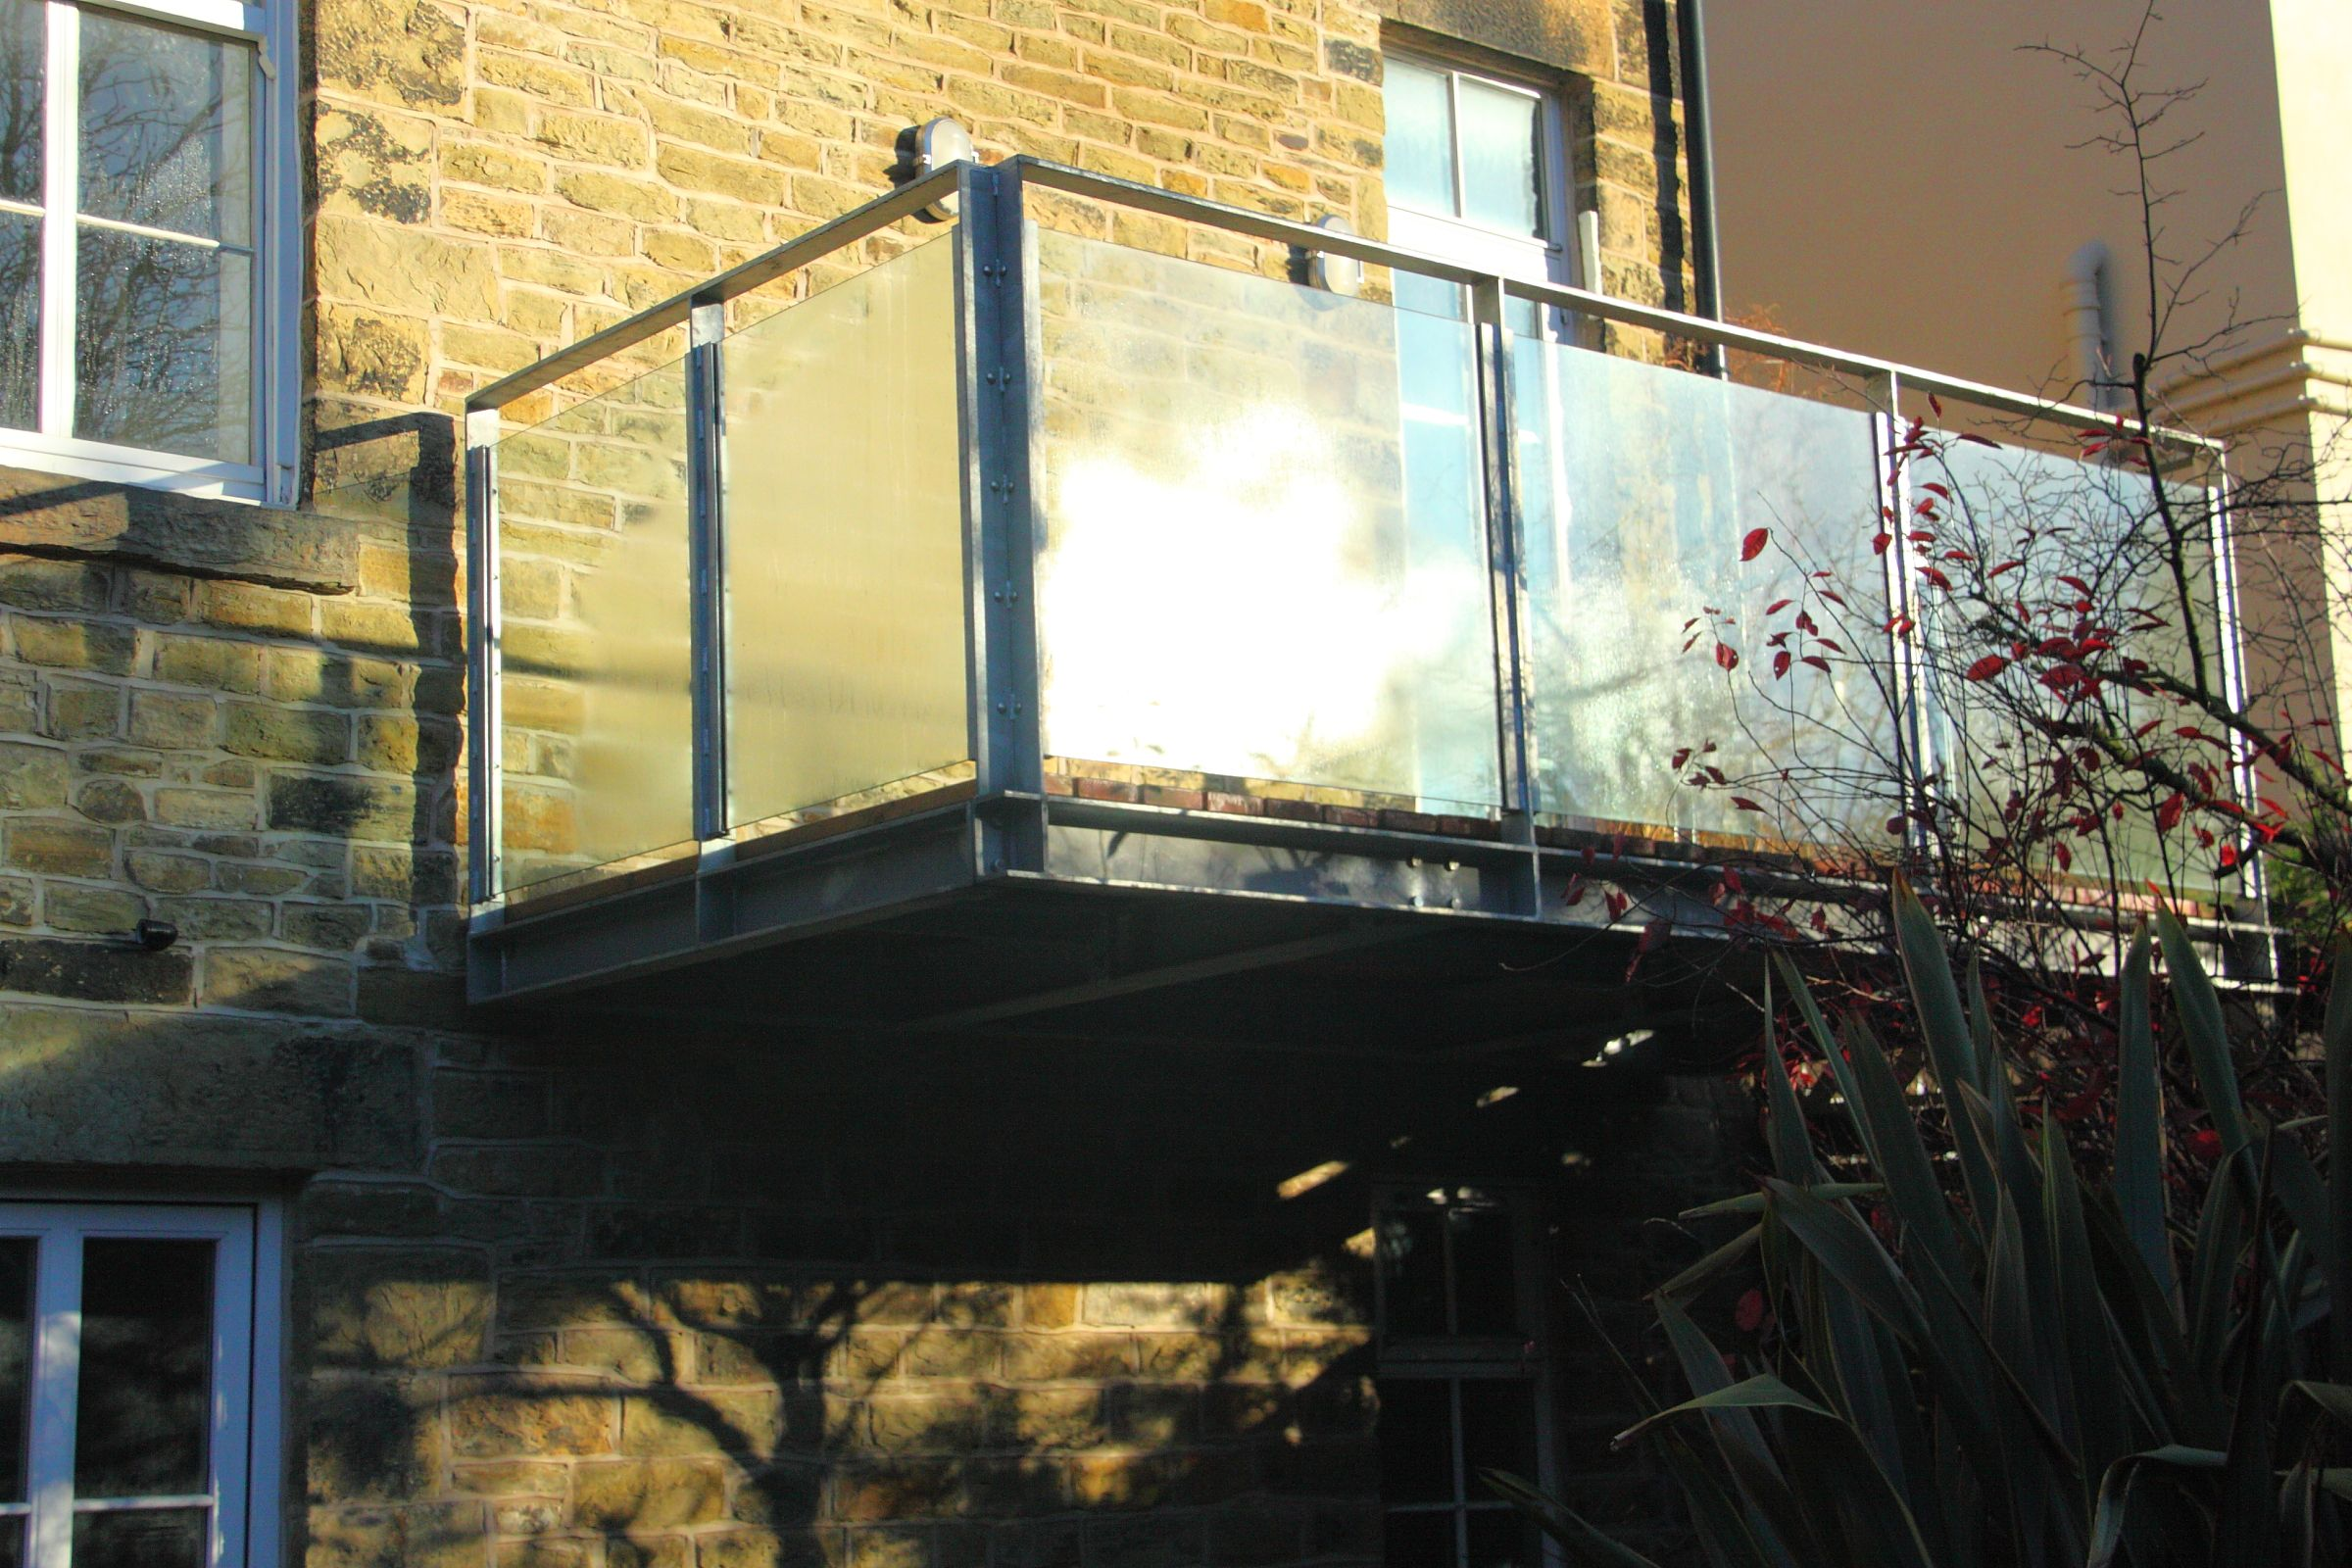 Design: Hughes Coates Architecture. Steel, glass and timber balcony on a Victorian detached villa in Sheffield. A modern minimalist design takes advantage of a sloping site to provide outdoor living for the raised ground floor.